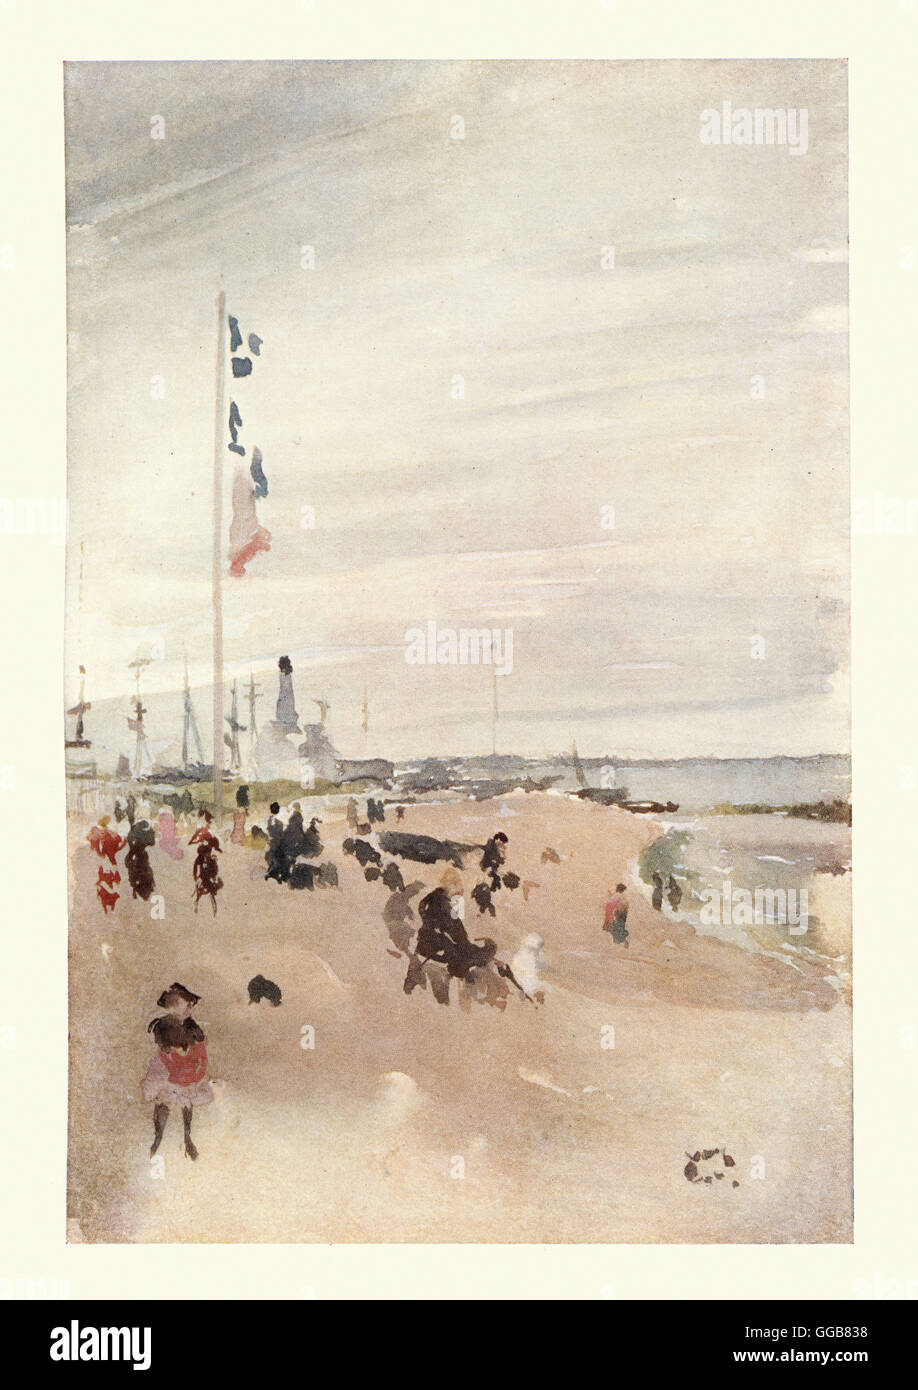 The Beach, after the watercolour by James Abbott McNeill Whistler. - Stock Image